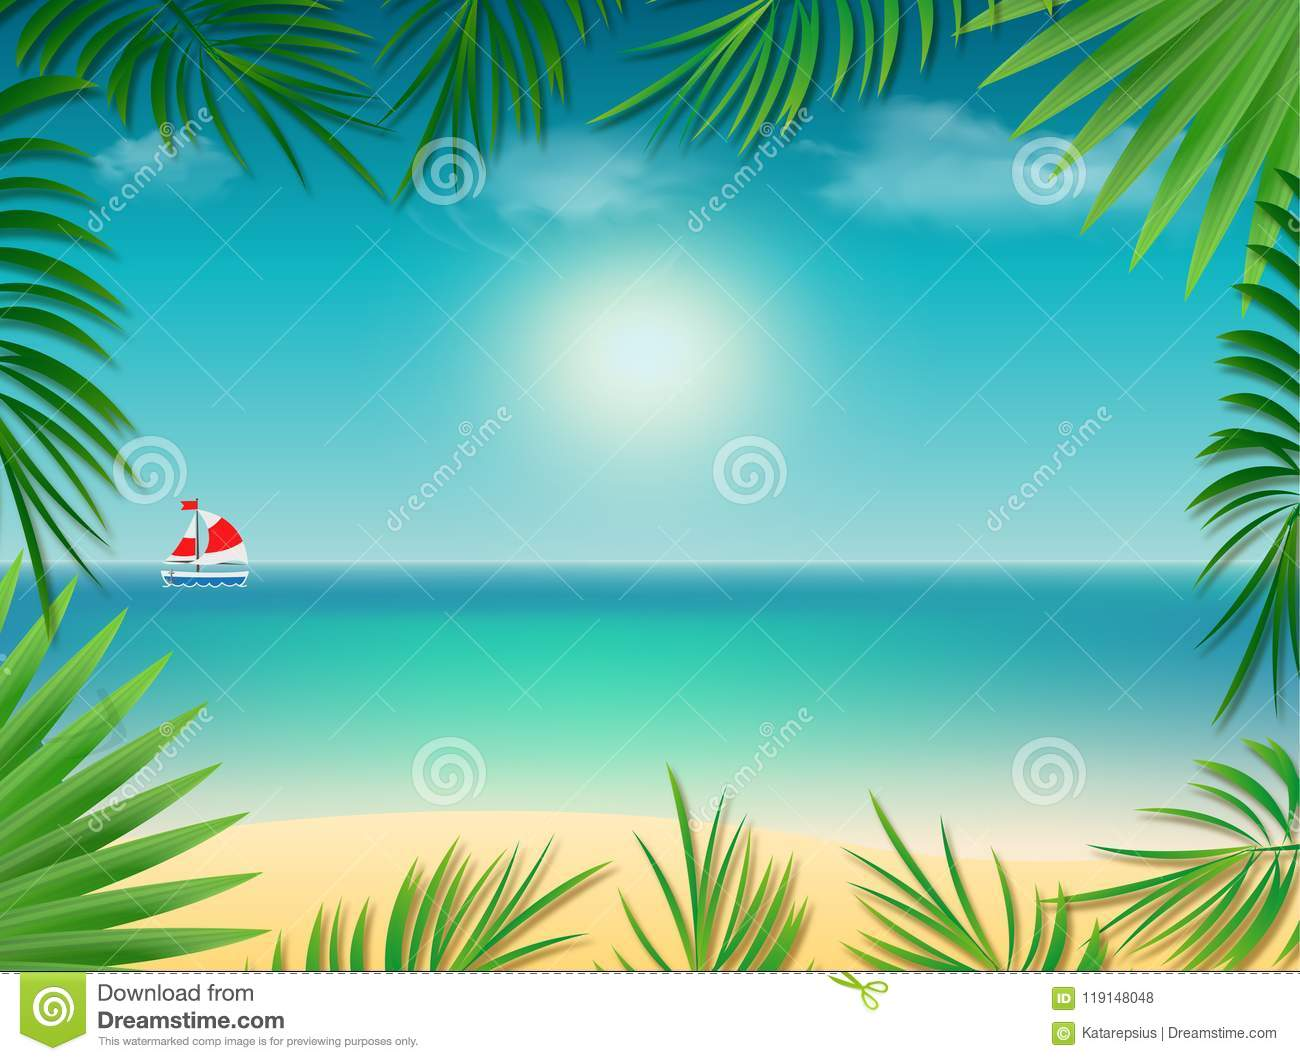 Tropical Background Frame With Sea Beach Framed With Palm Tree Leaves Stock Illustration Illustration Of Boat Resort 119148048